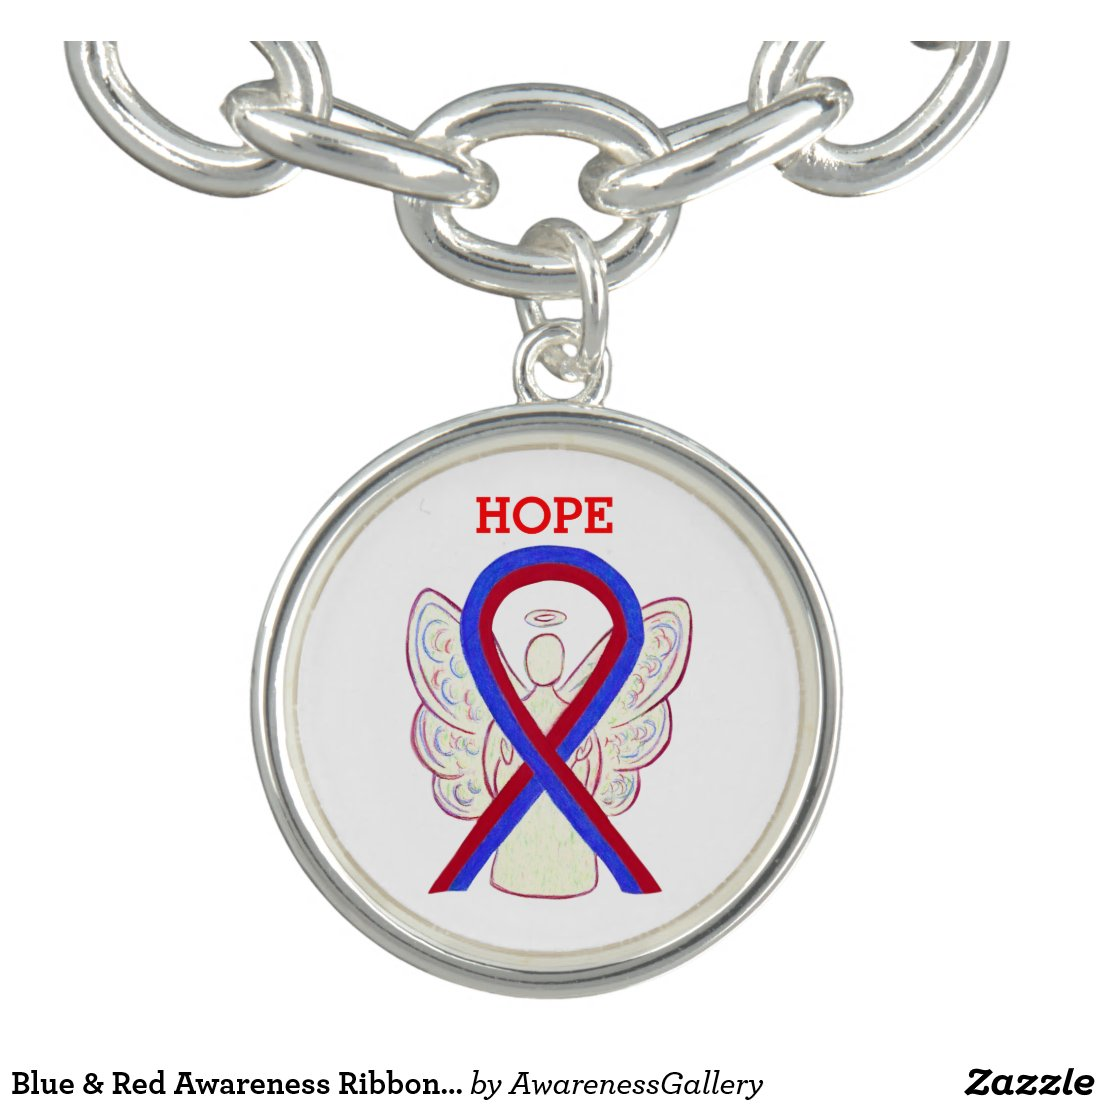 Blue & Red Awareness Ribbon Angel Charm Bracelet